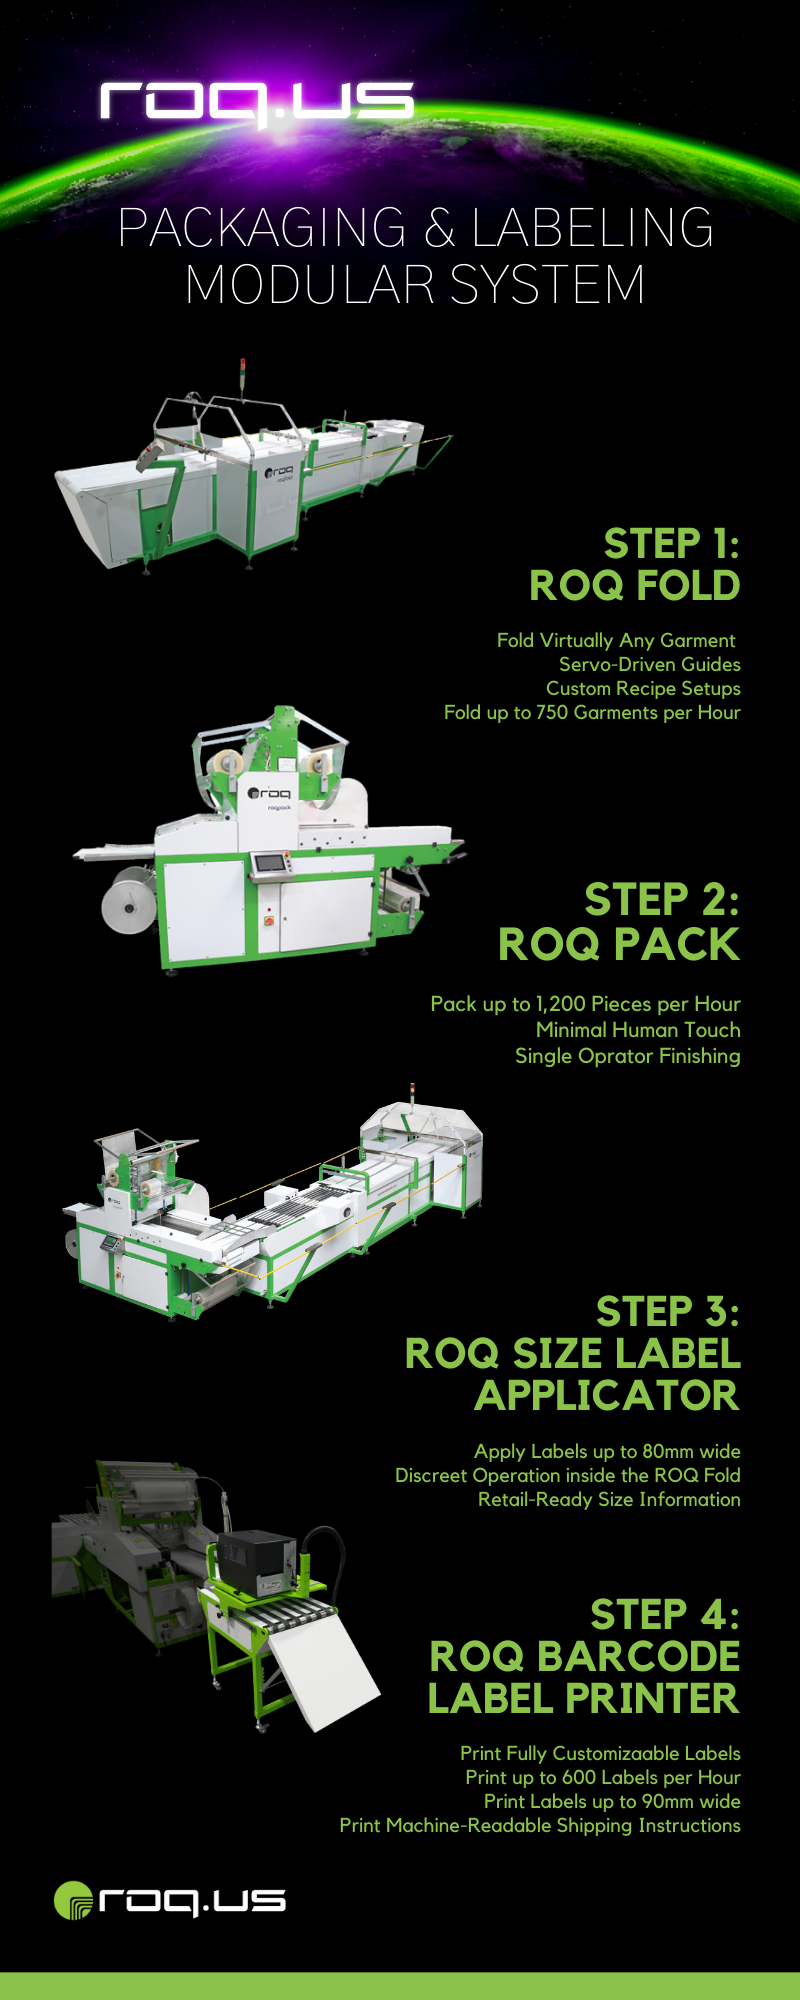 ROQ US Packaging and Labeling Automatic Modular System